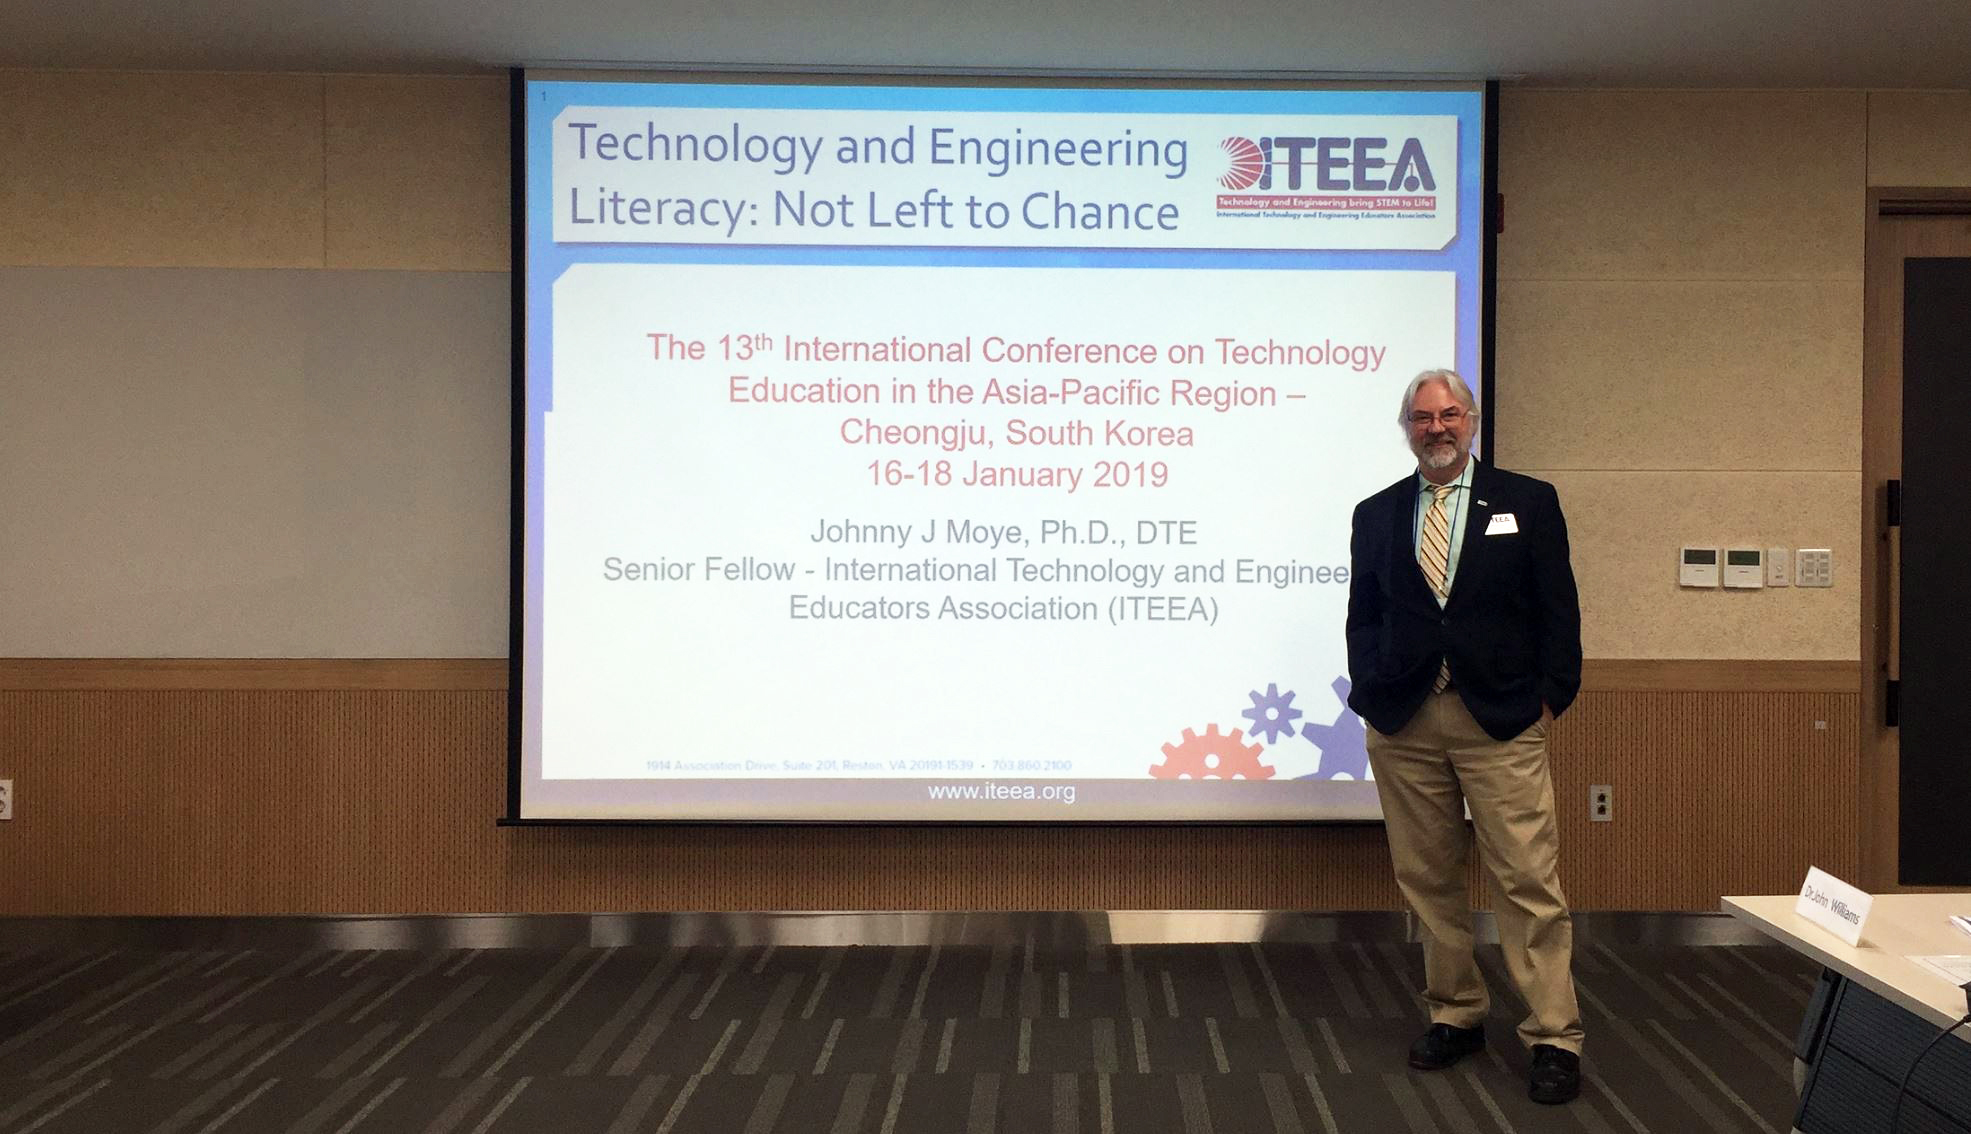 ITEEA Represented at 13th Int'l Conference on Tech Ed in the Asia-Pacific Region